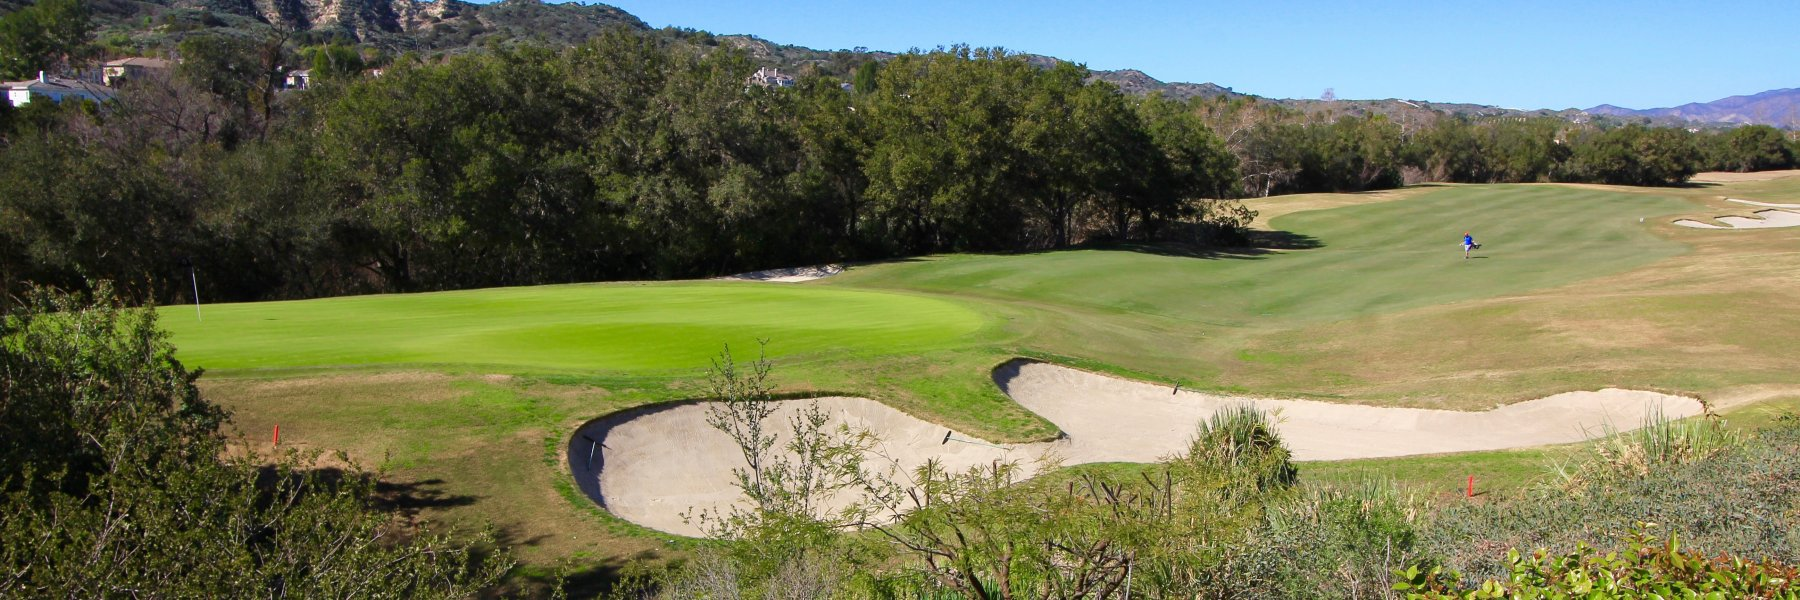 The Woods is a community of homes in Coto de Caza, California